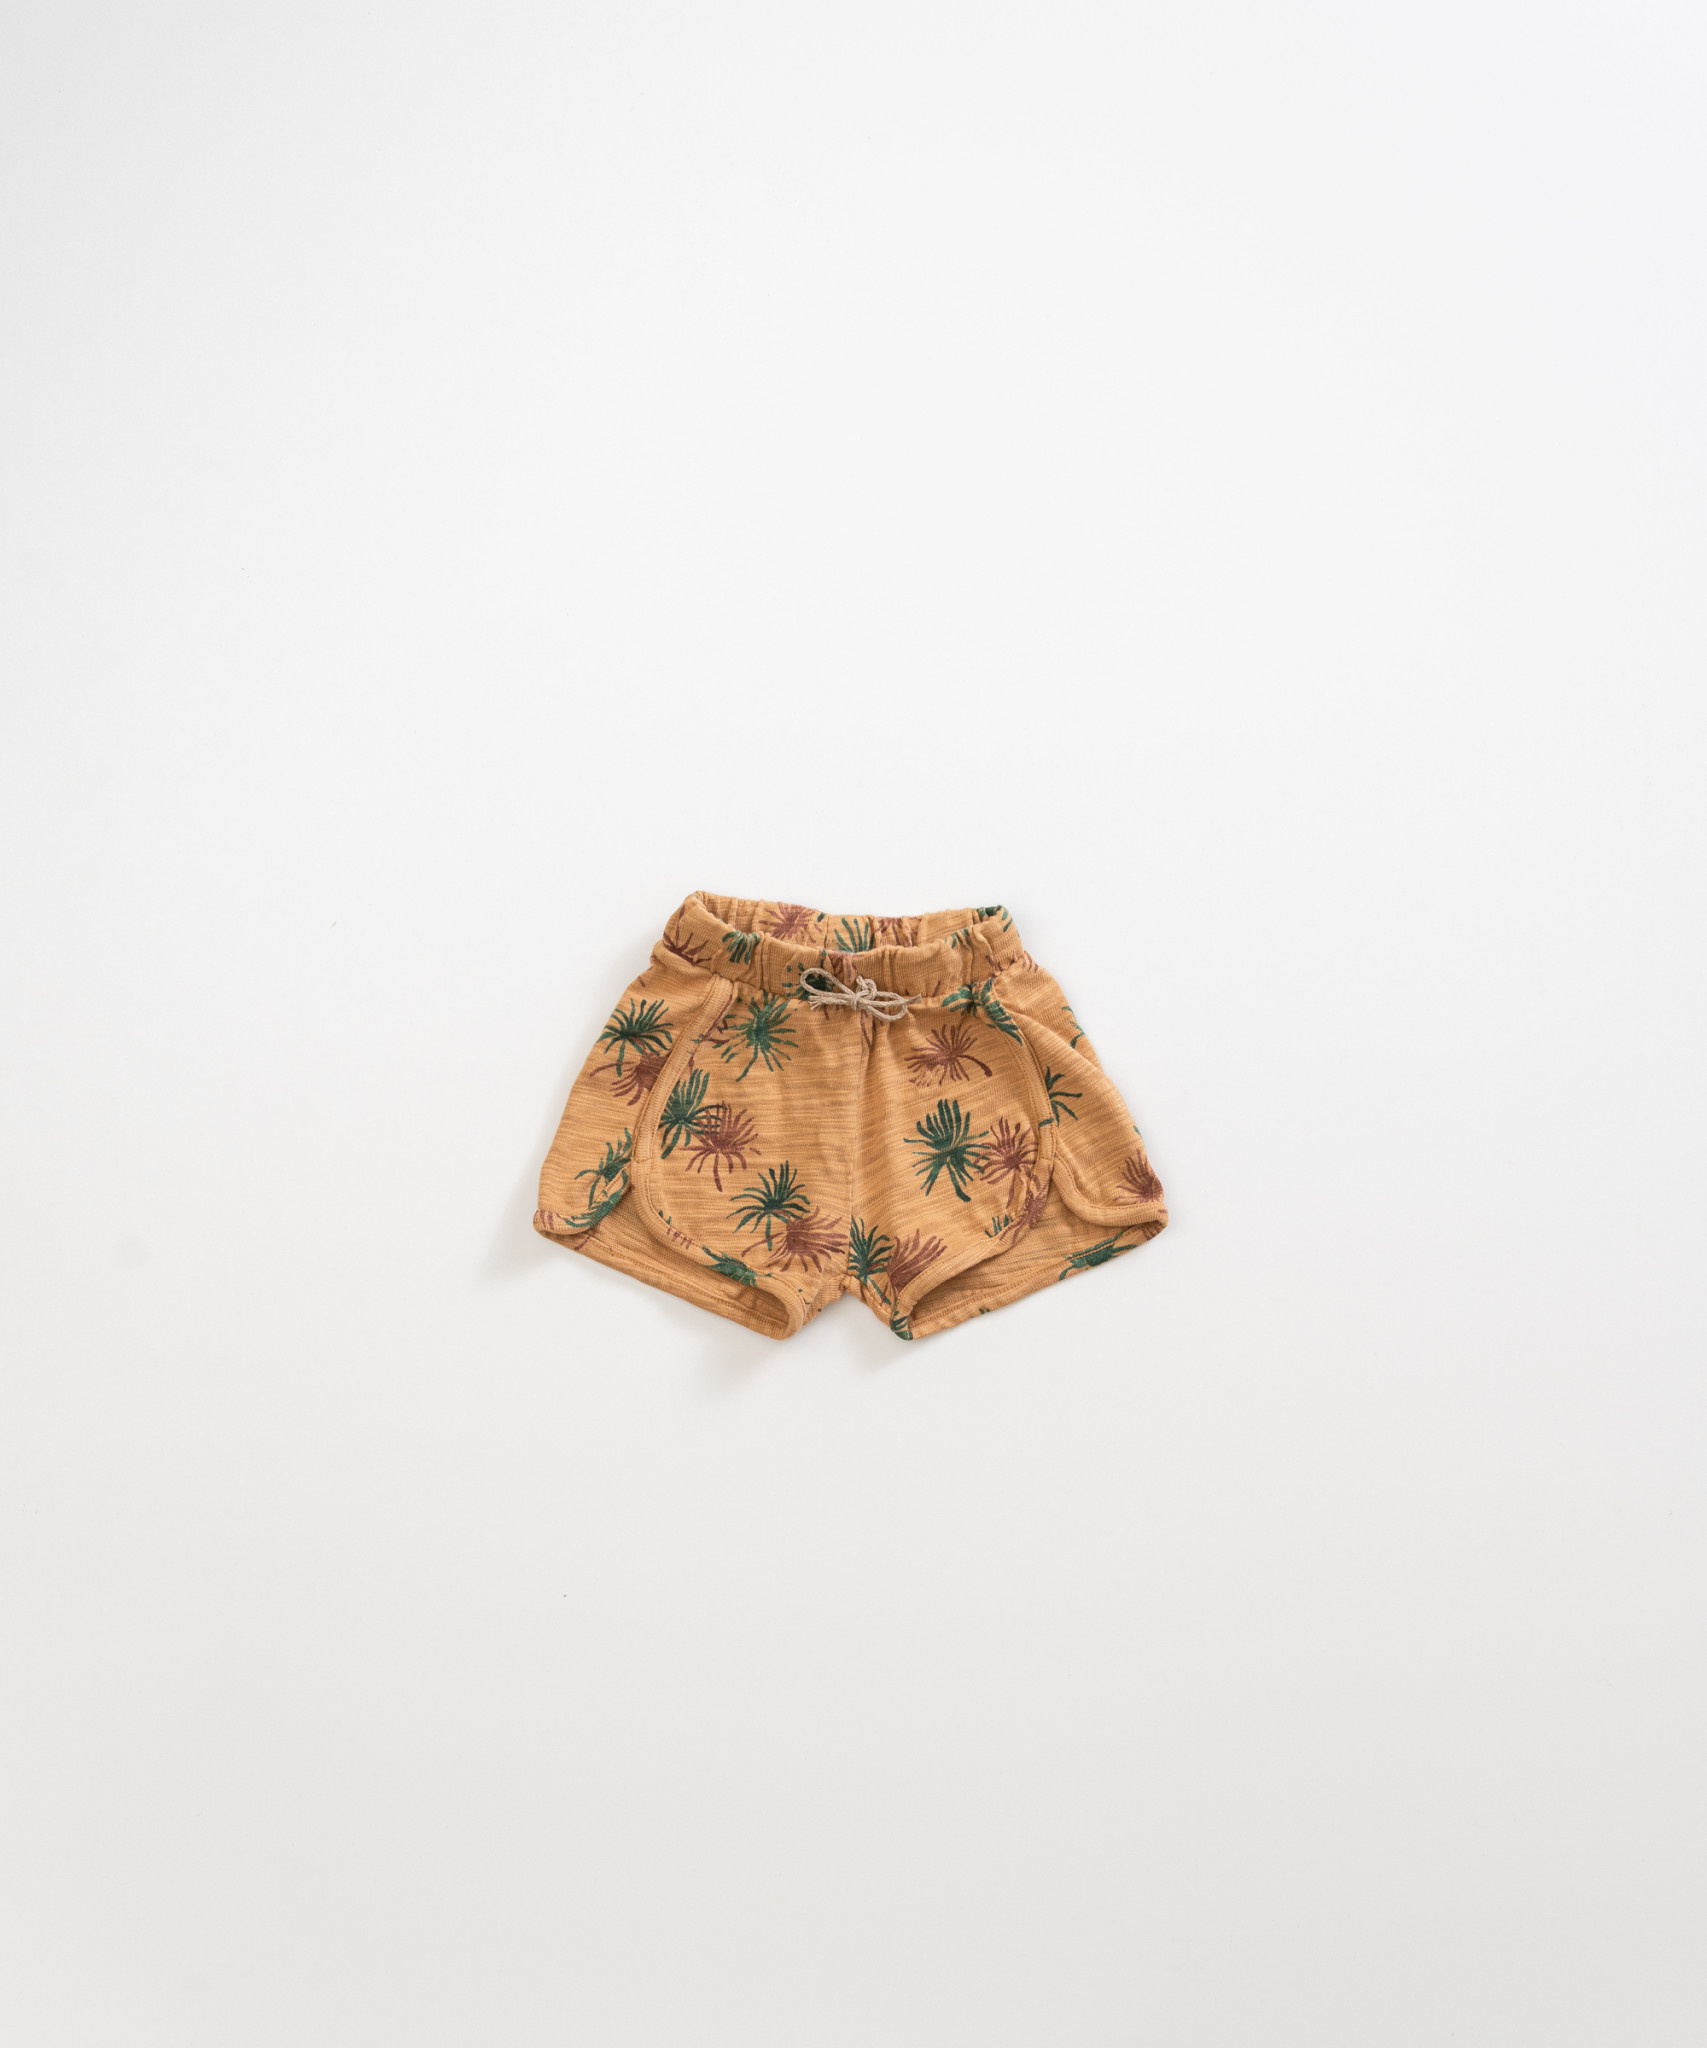 Play-up Cotton shorts with print |Raffia